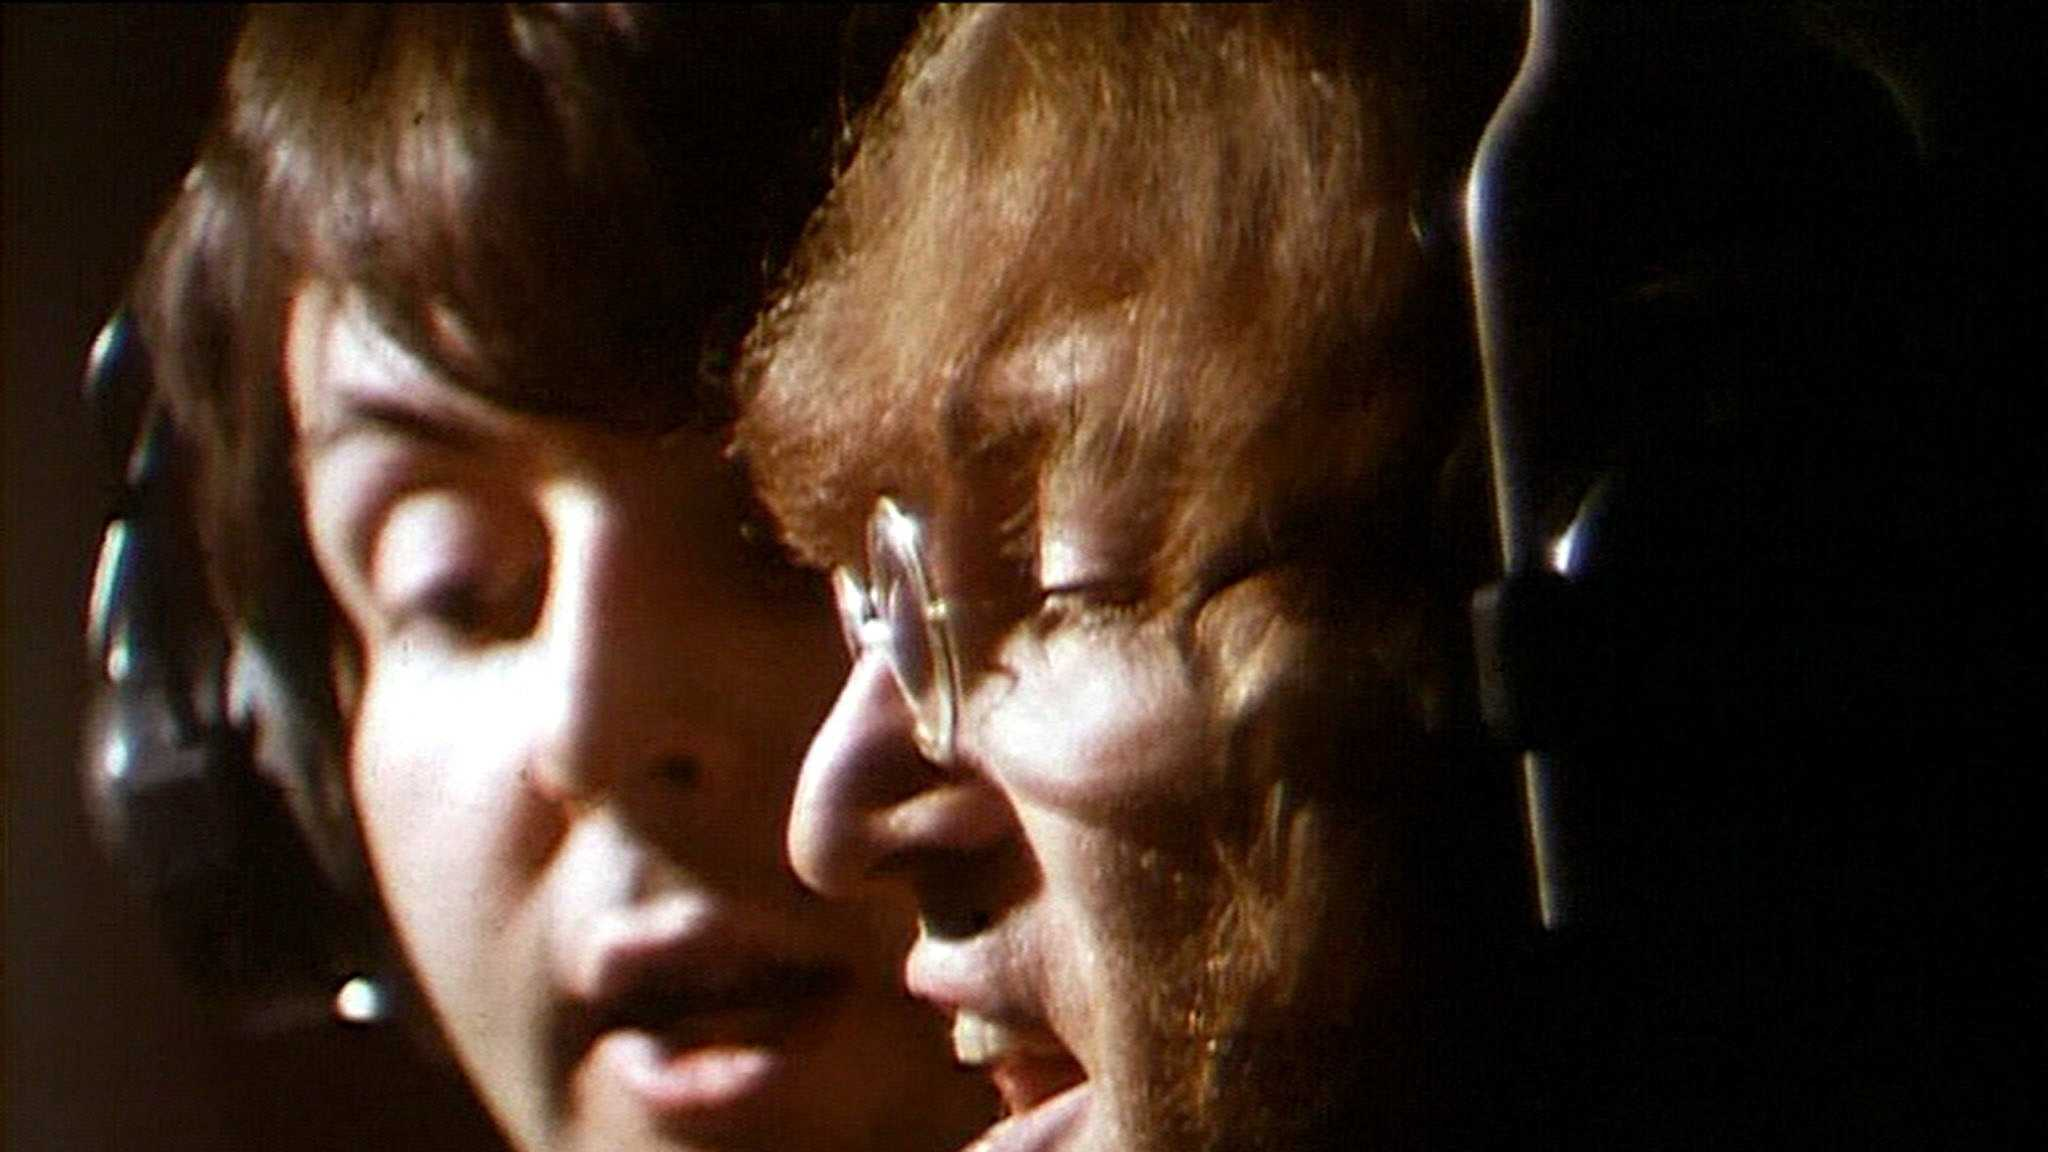 Beatles John Lennon and Paul McCartney sing their harmonizing vocal lines in the Abbey Road Studios in London, England, Feb. 11, 1968, during a recording session.